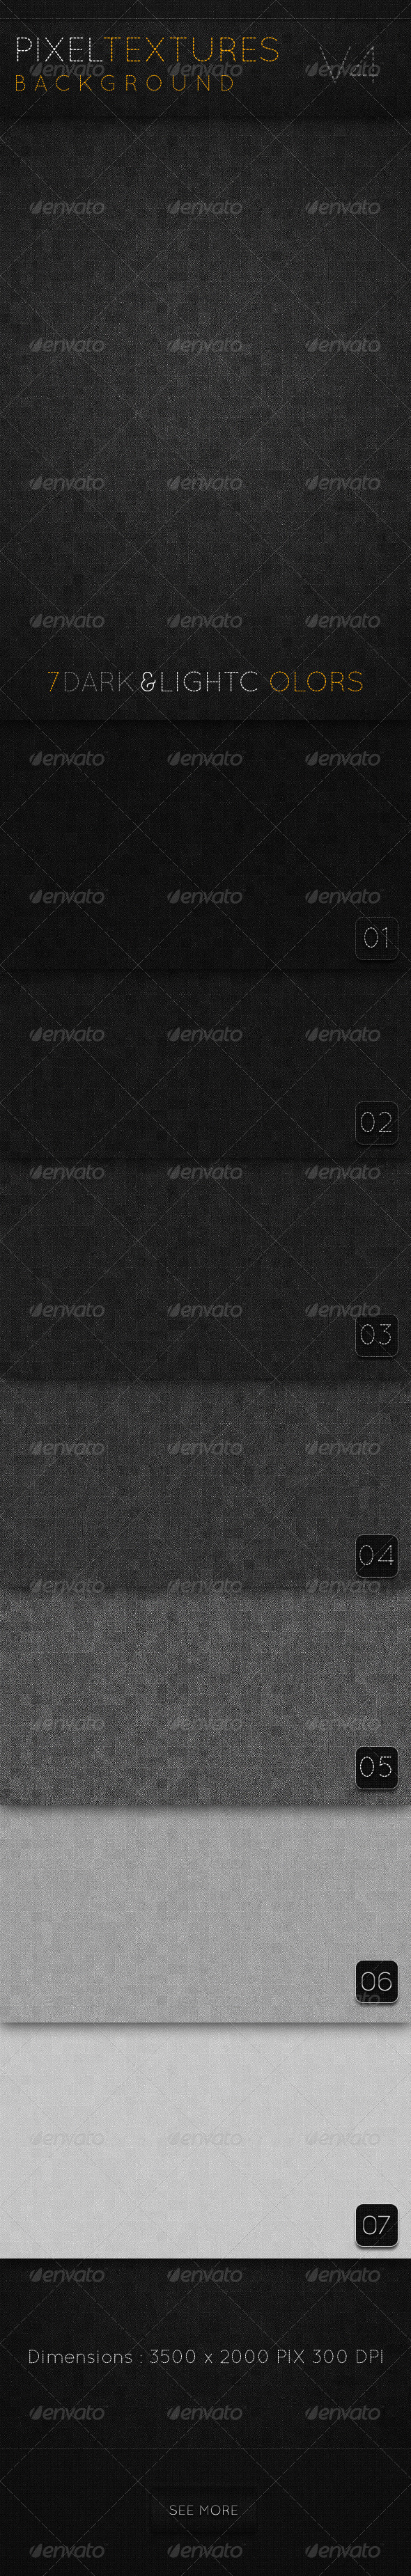 GraphicRiver Pixel Textures background V4 2380201